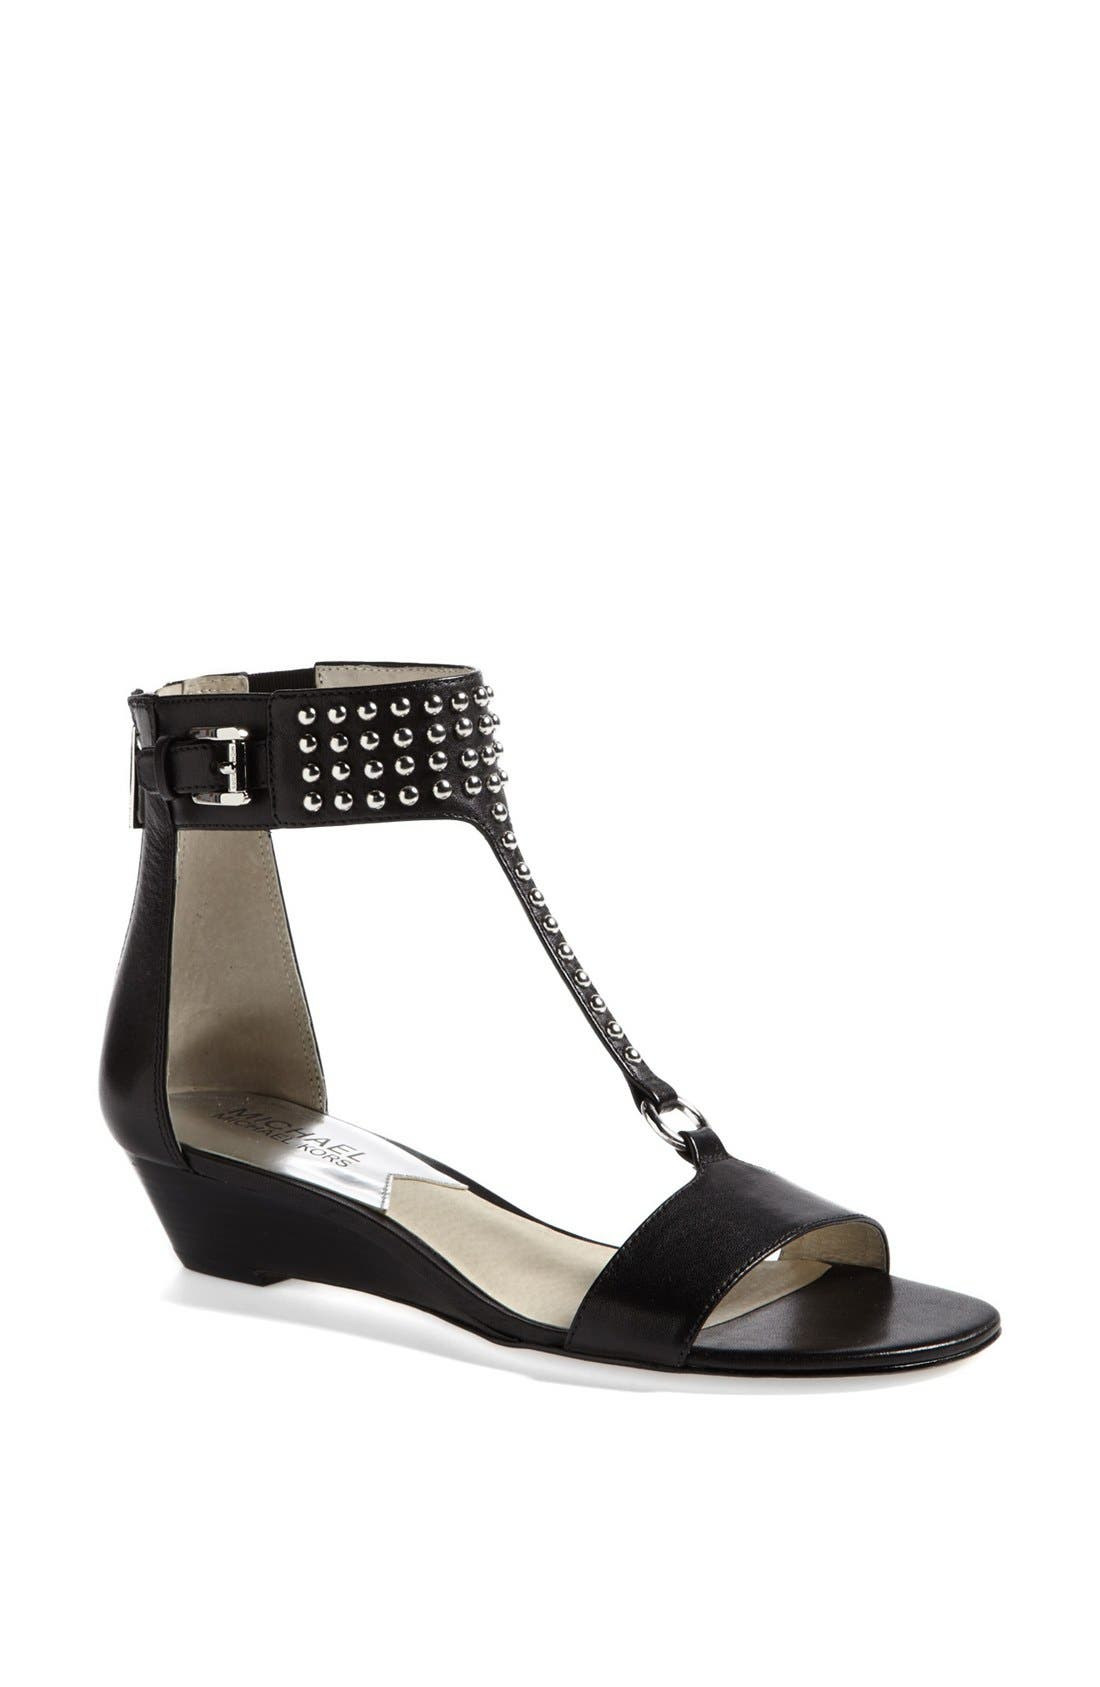 Alternate Image 1 Selected - MICHAEL Michael Kors 'Celena' Wedge Sandal